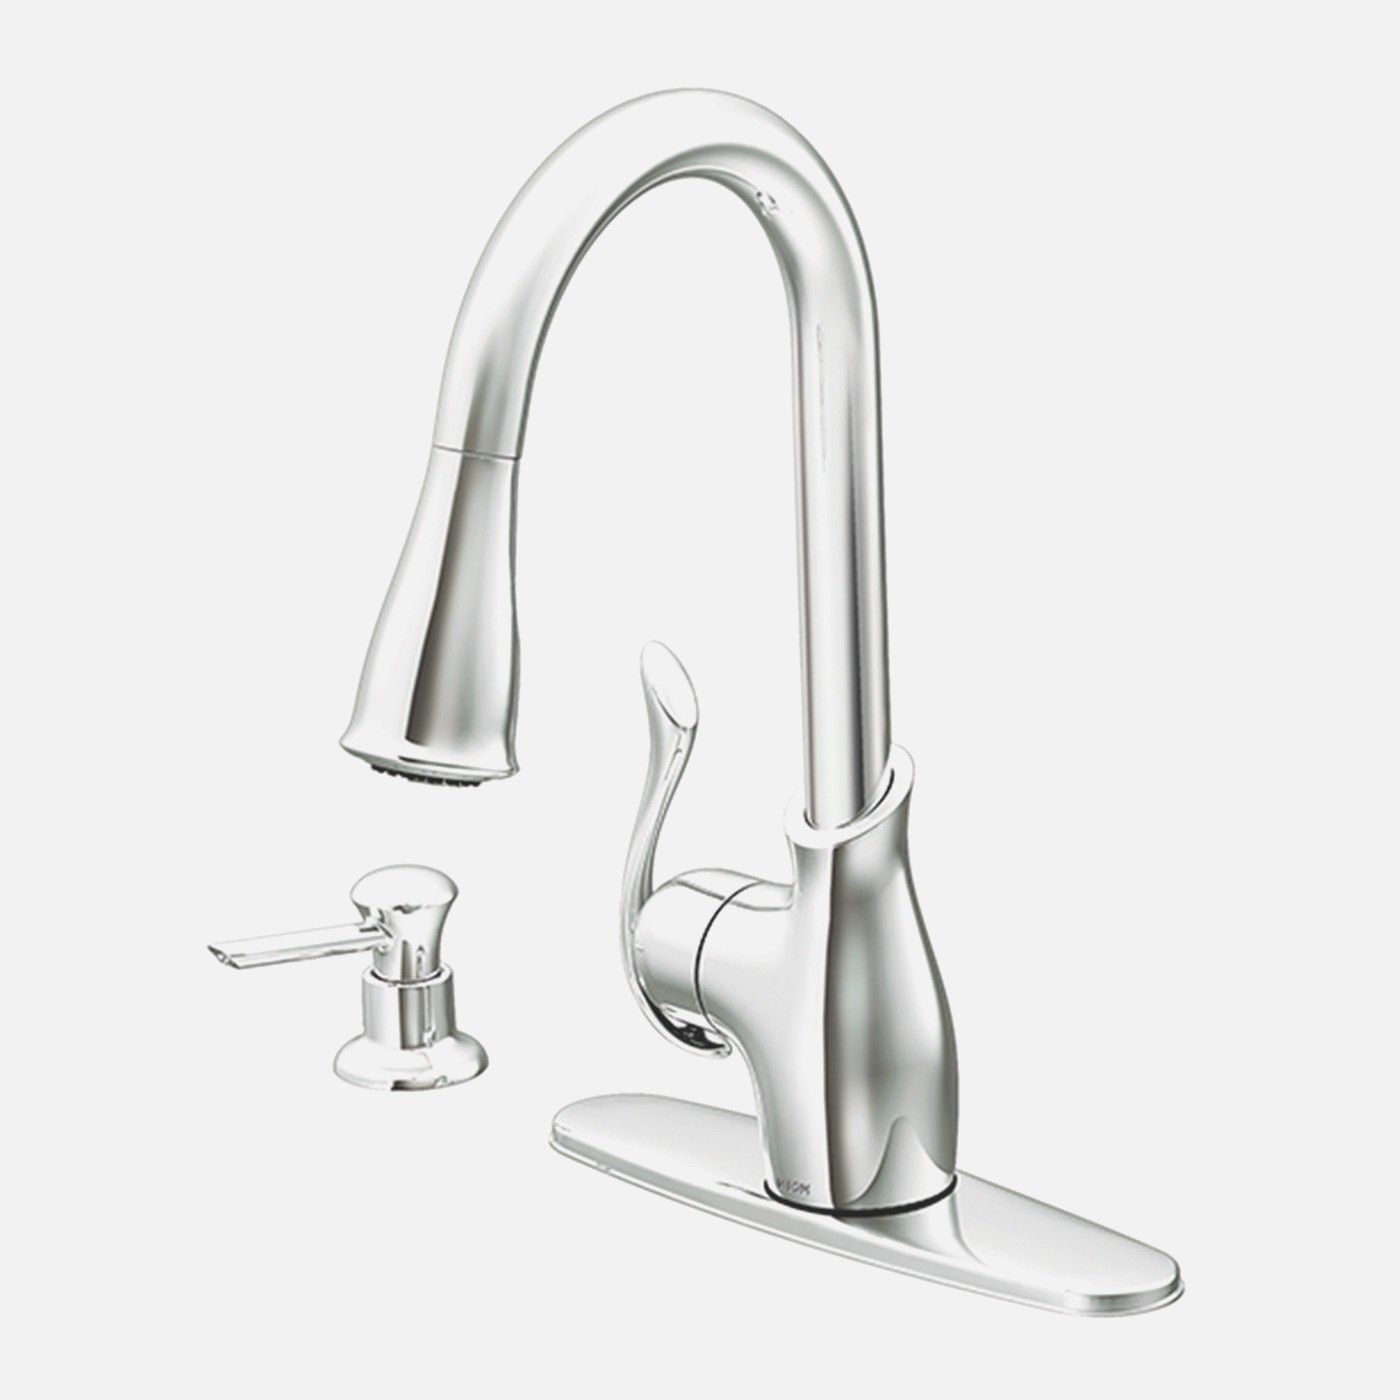 Home depot kitchen faucets moen home depot kitchen faucets moen home depot moe home depot moen kitchen faucet parts home depot moen kitchen faucet